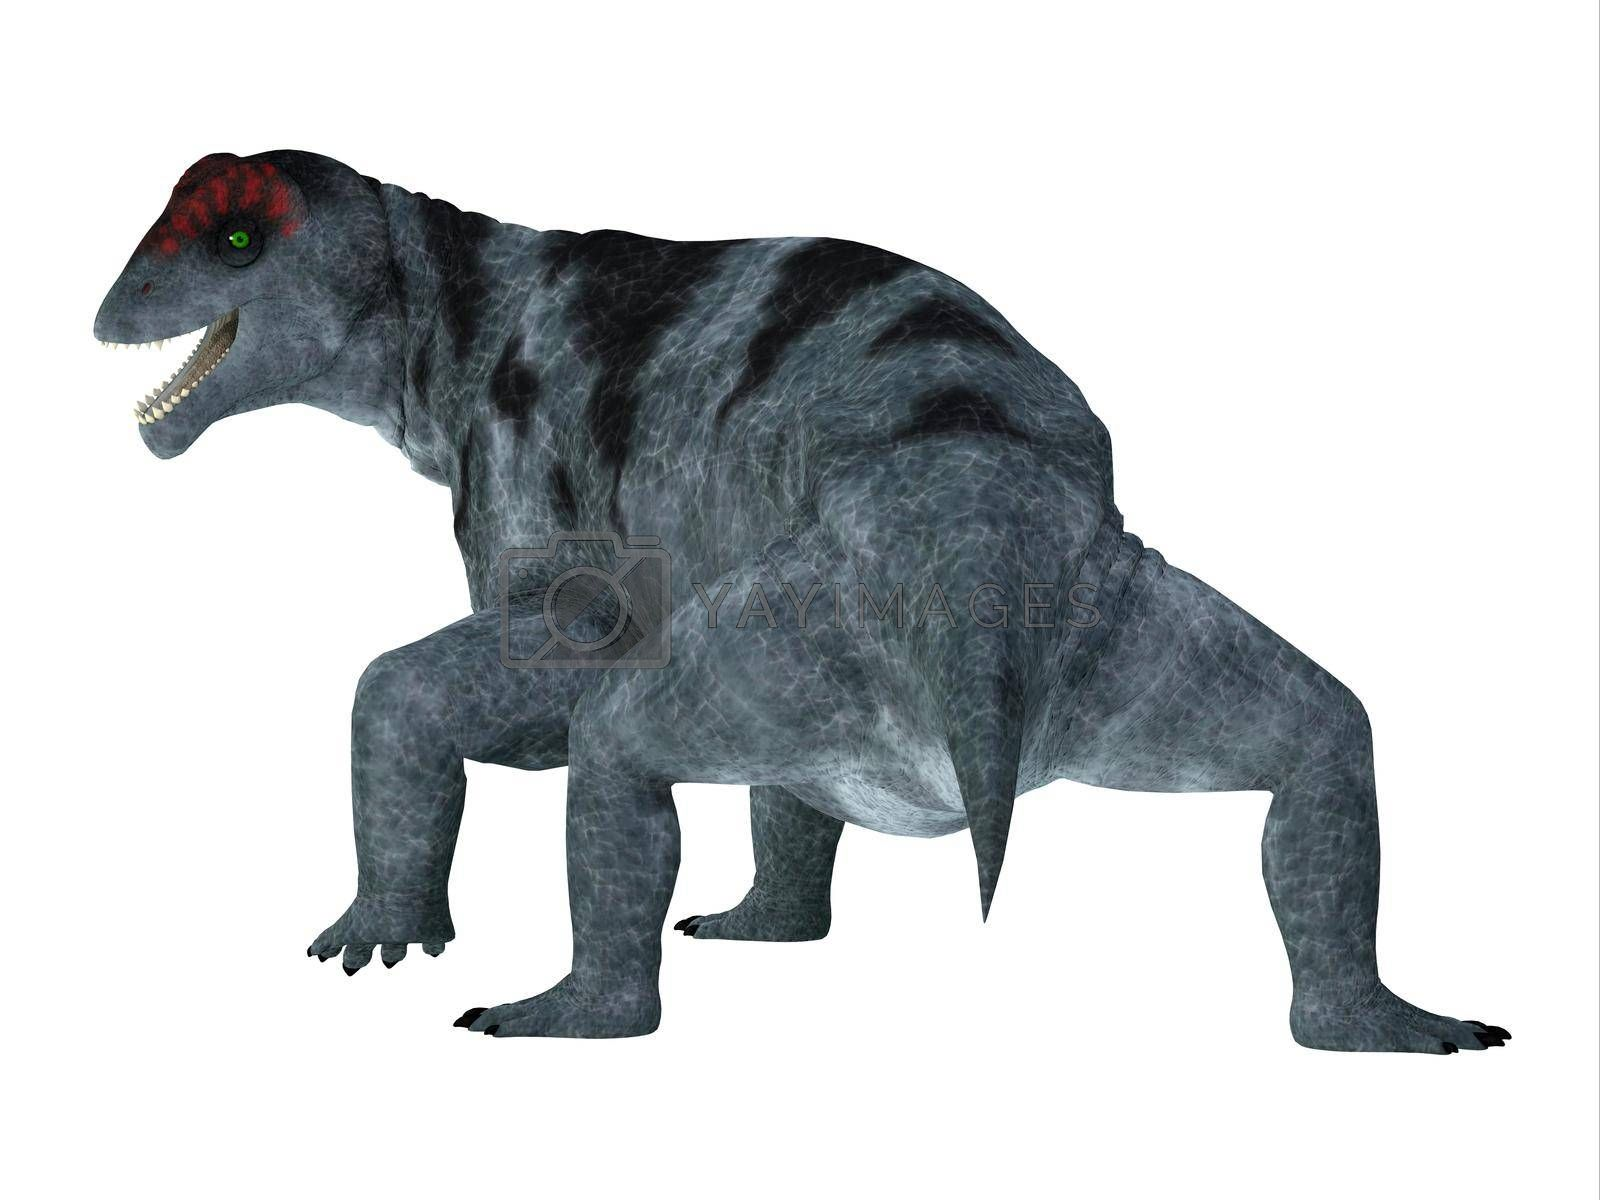 Royalty free image of Moschops Dinosaur Tail by Catmando